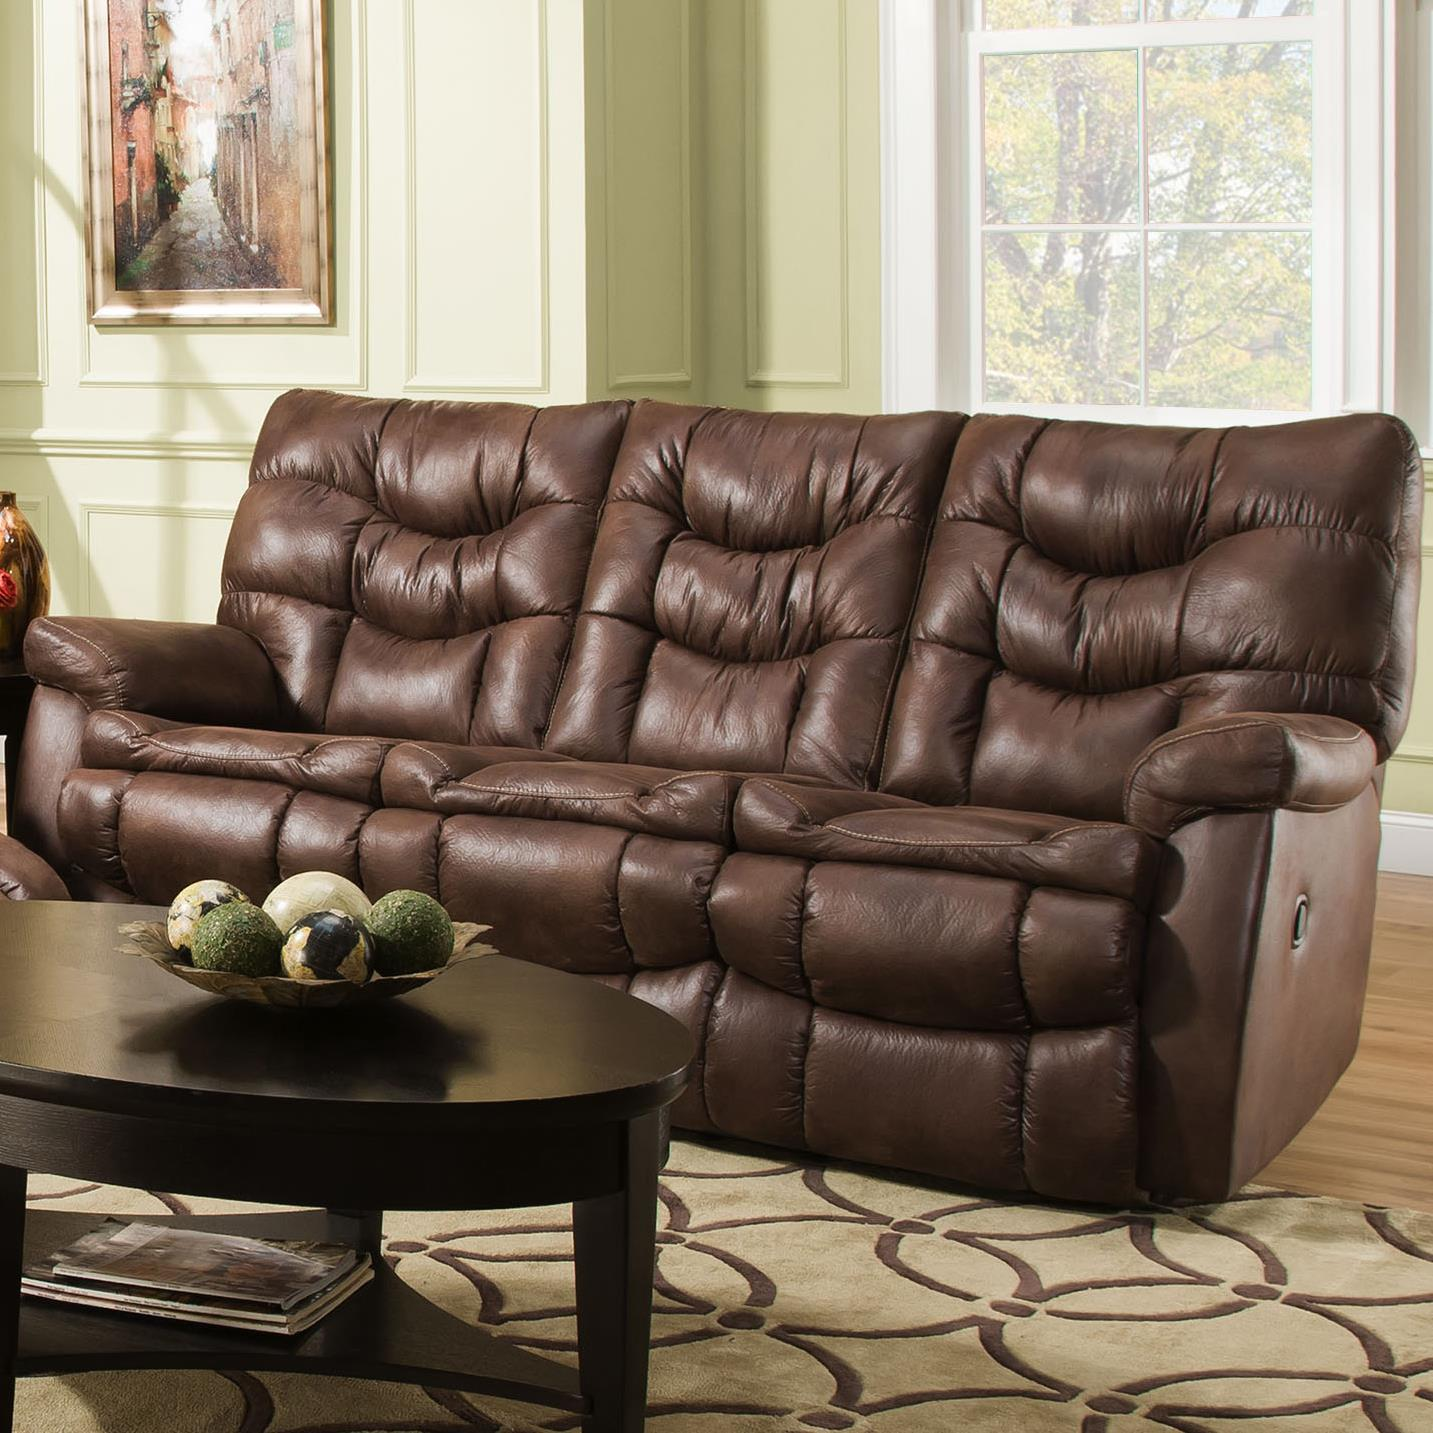 HomeStretch 130 Casual Reclining Sofa - Item Number: 130-30-21